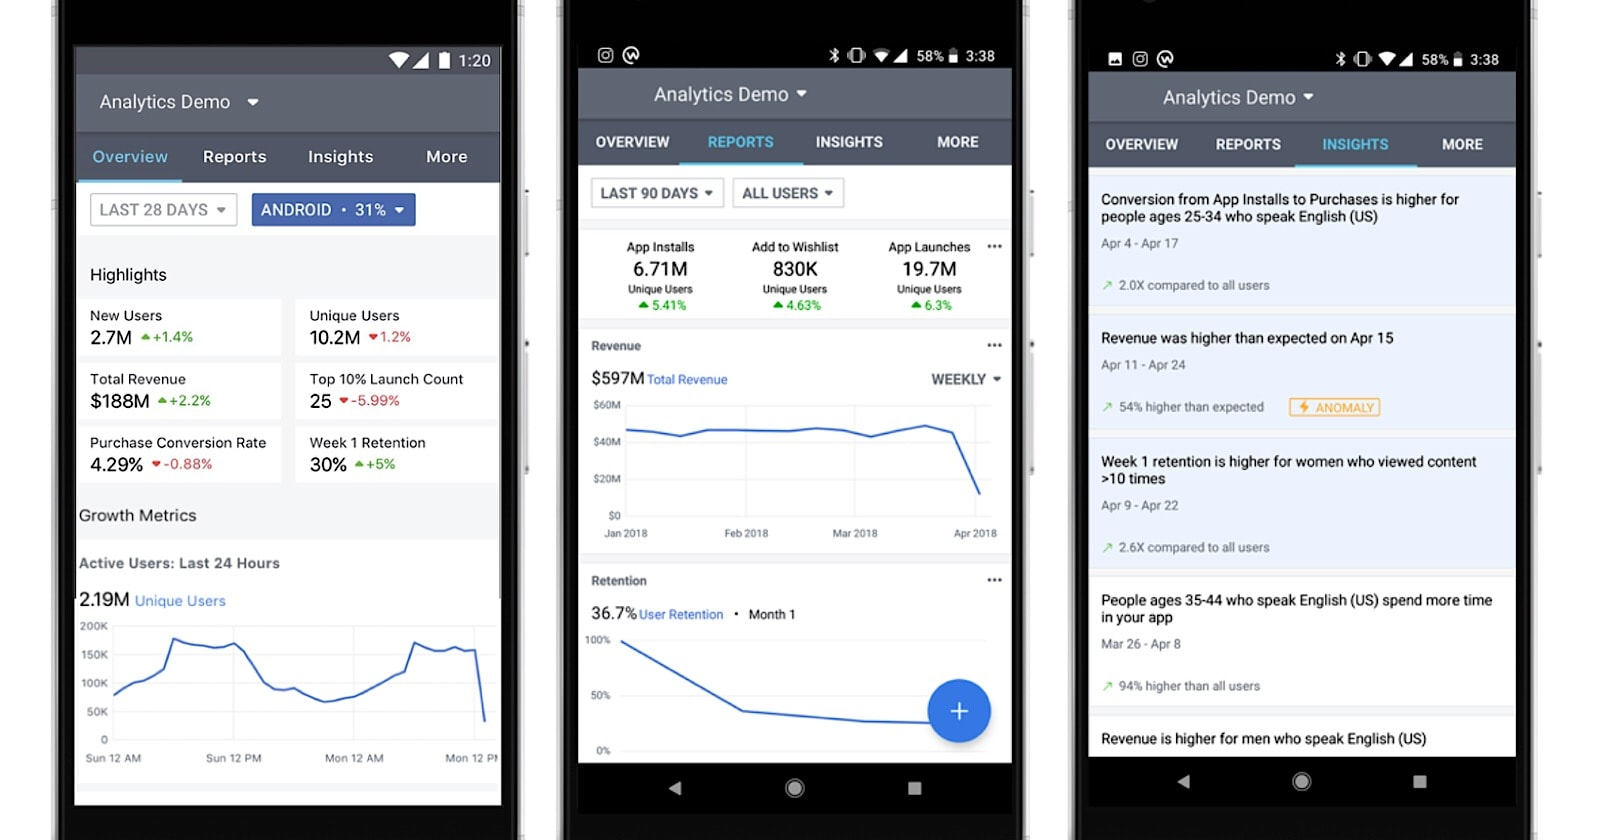 Facebook Introduces An Analytics App for iOS and Android – Search Engine Journal